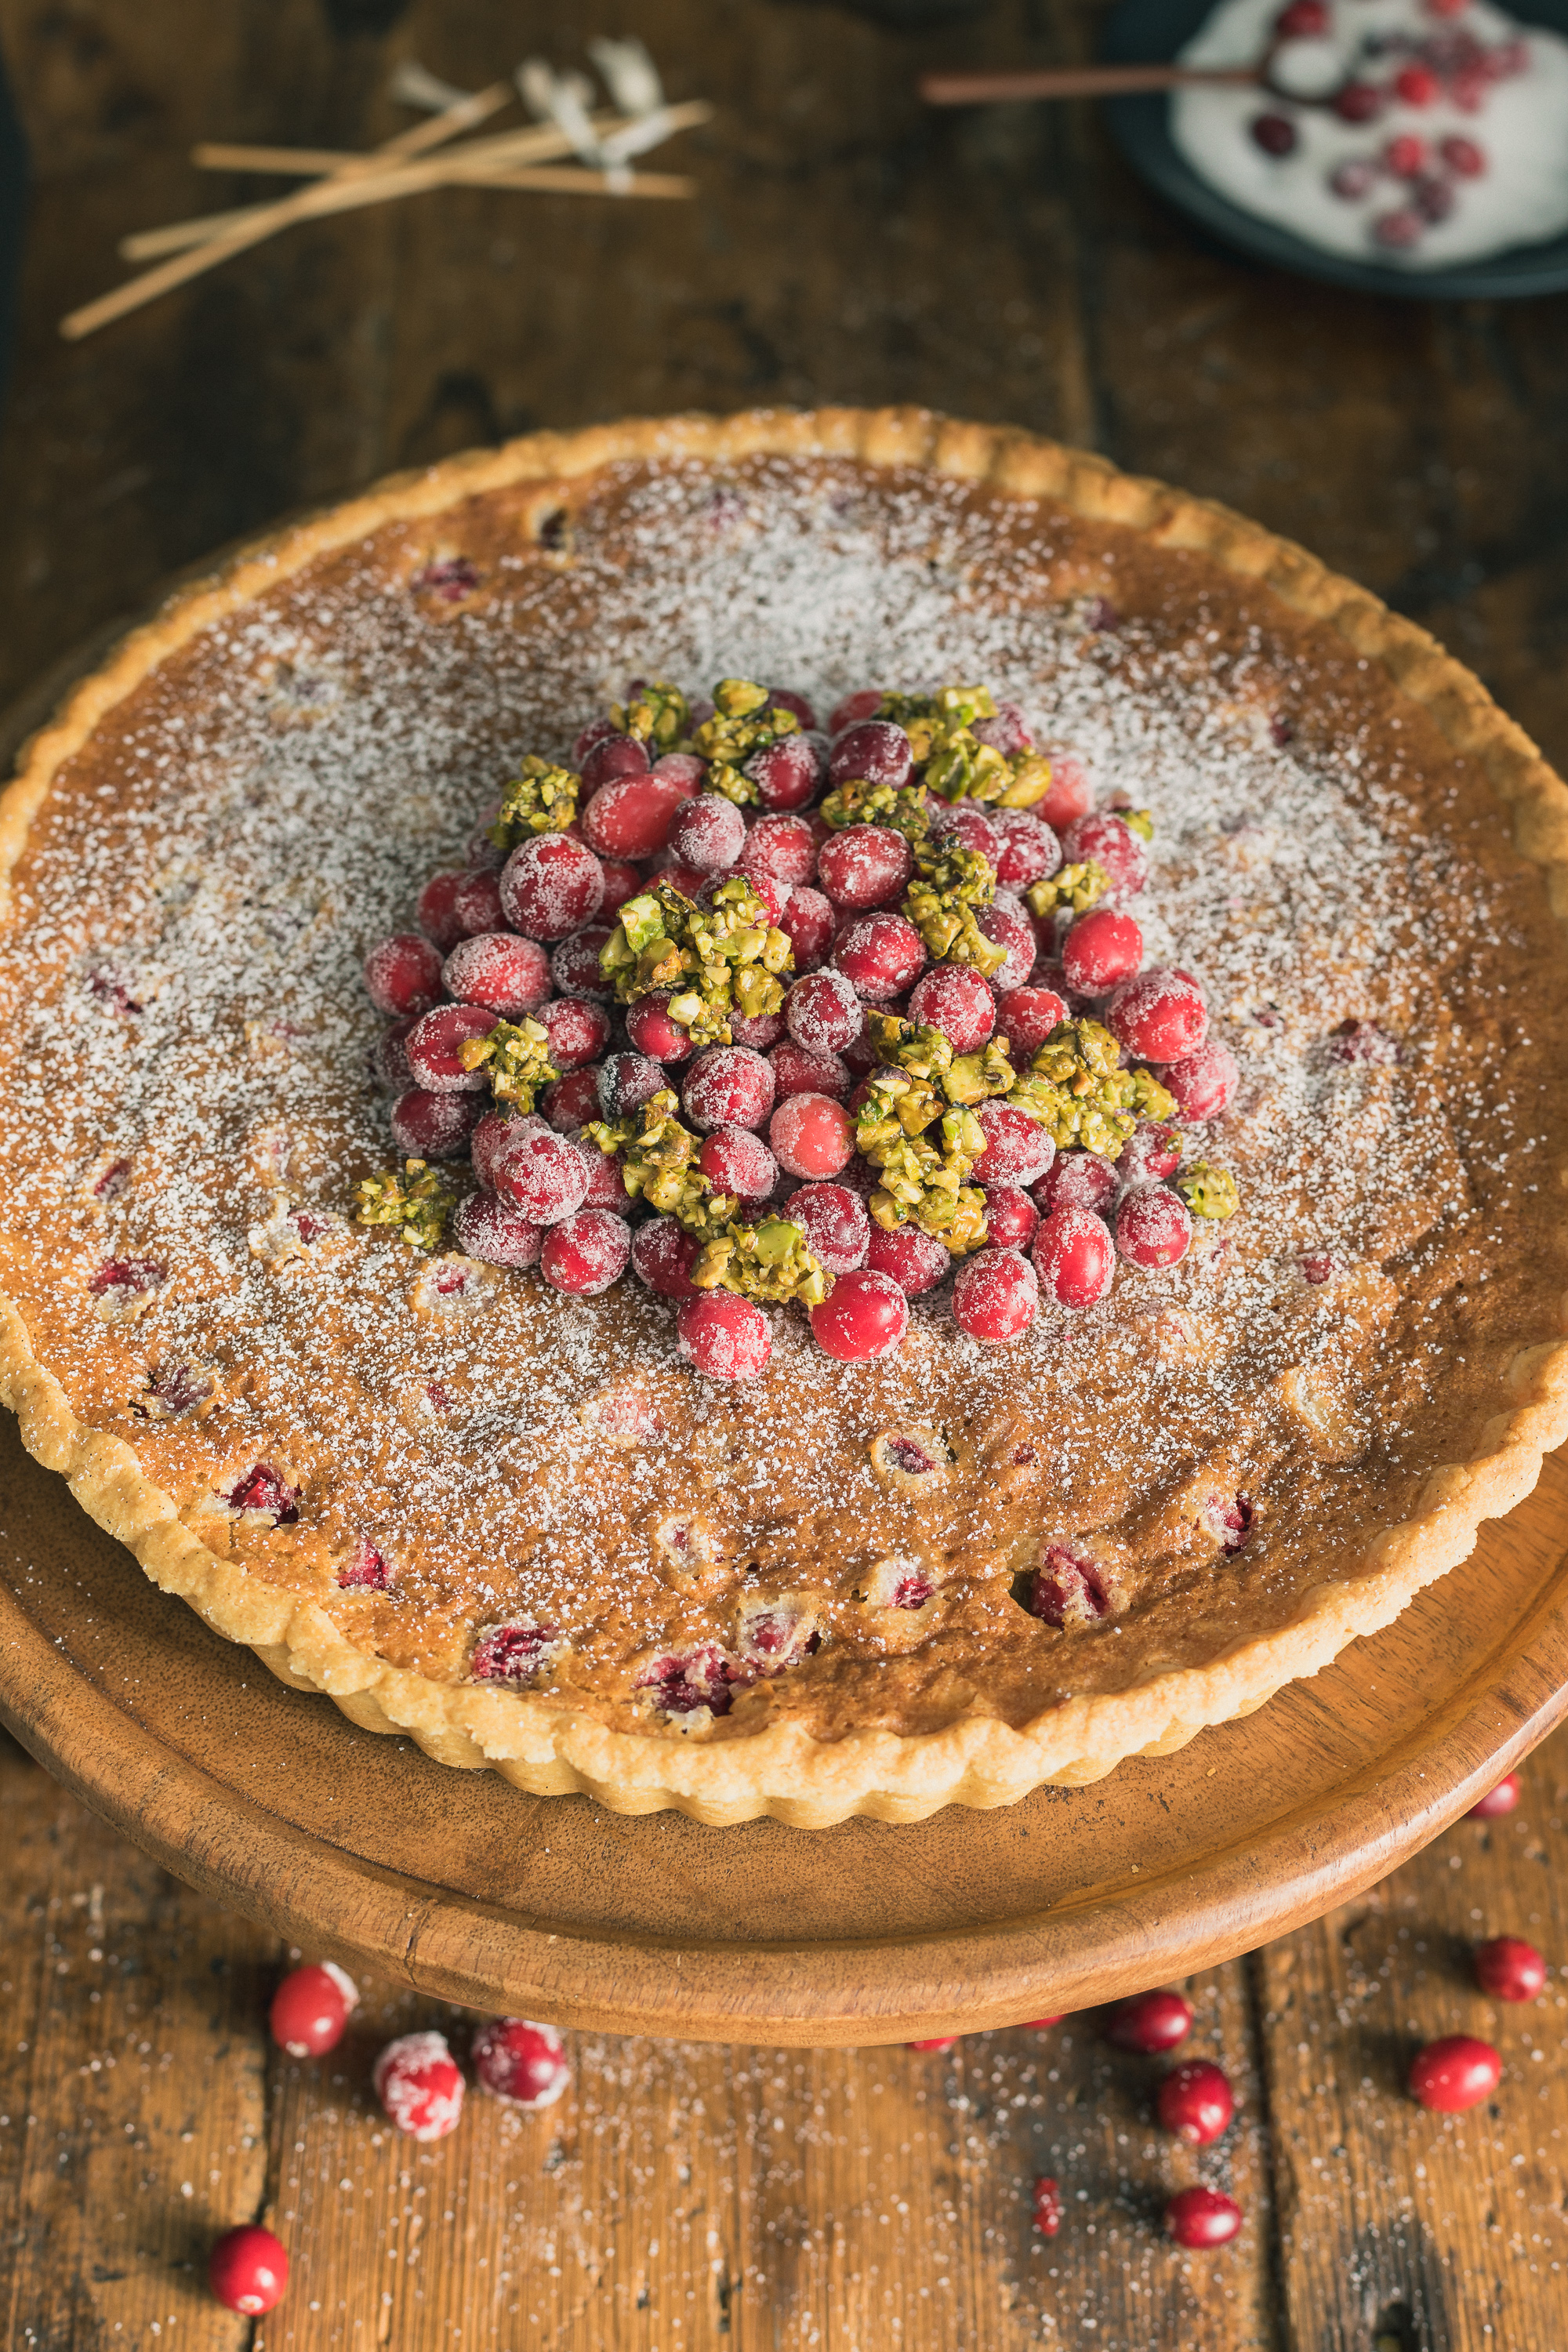 Cranberry Tart with Almond Frangipane - This French style fruit tart stars tart cranberries & a nutty almond frangipane nestled in a buttery pastry shell & topped with sugared cranberries & honeyed pistachios. It's elegant, yet easy & sure to impress at parties.